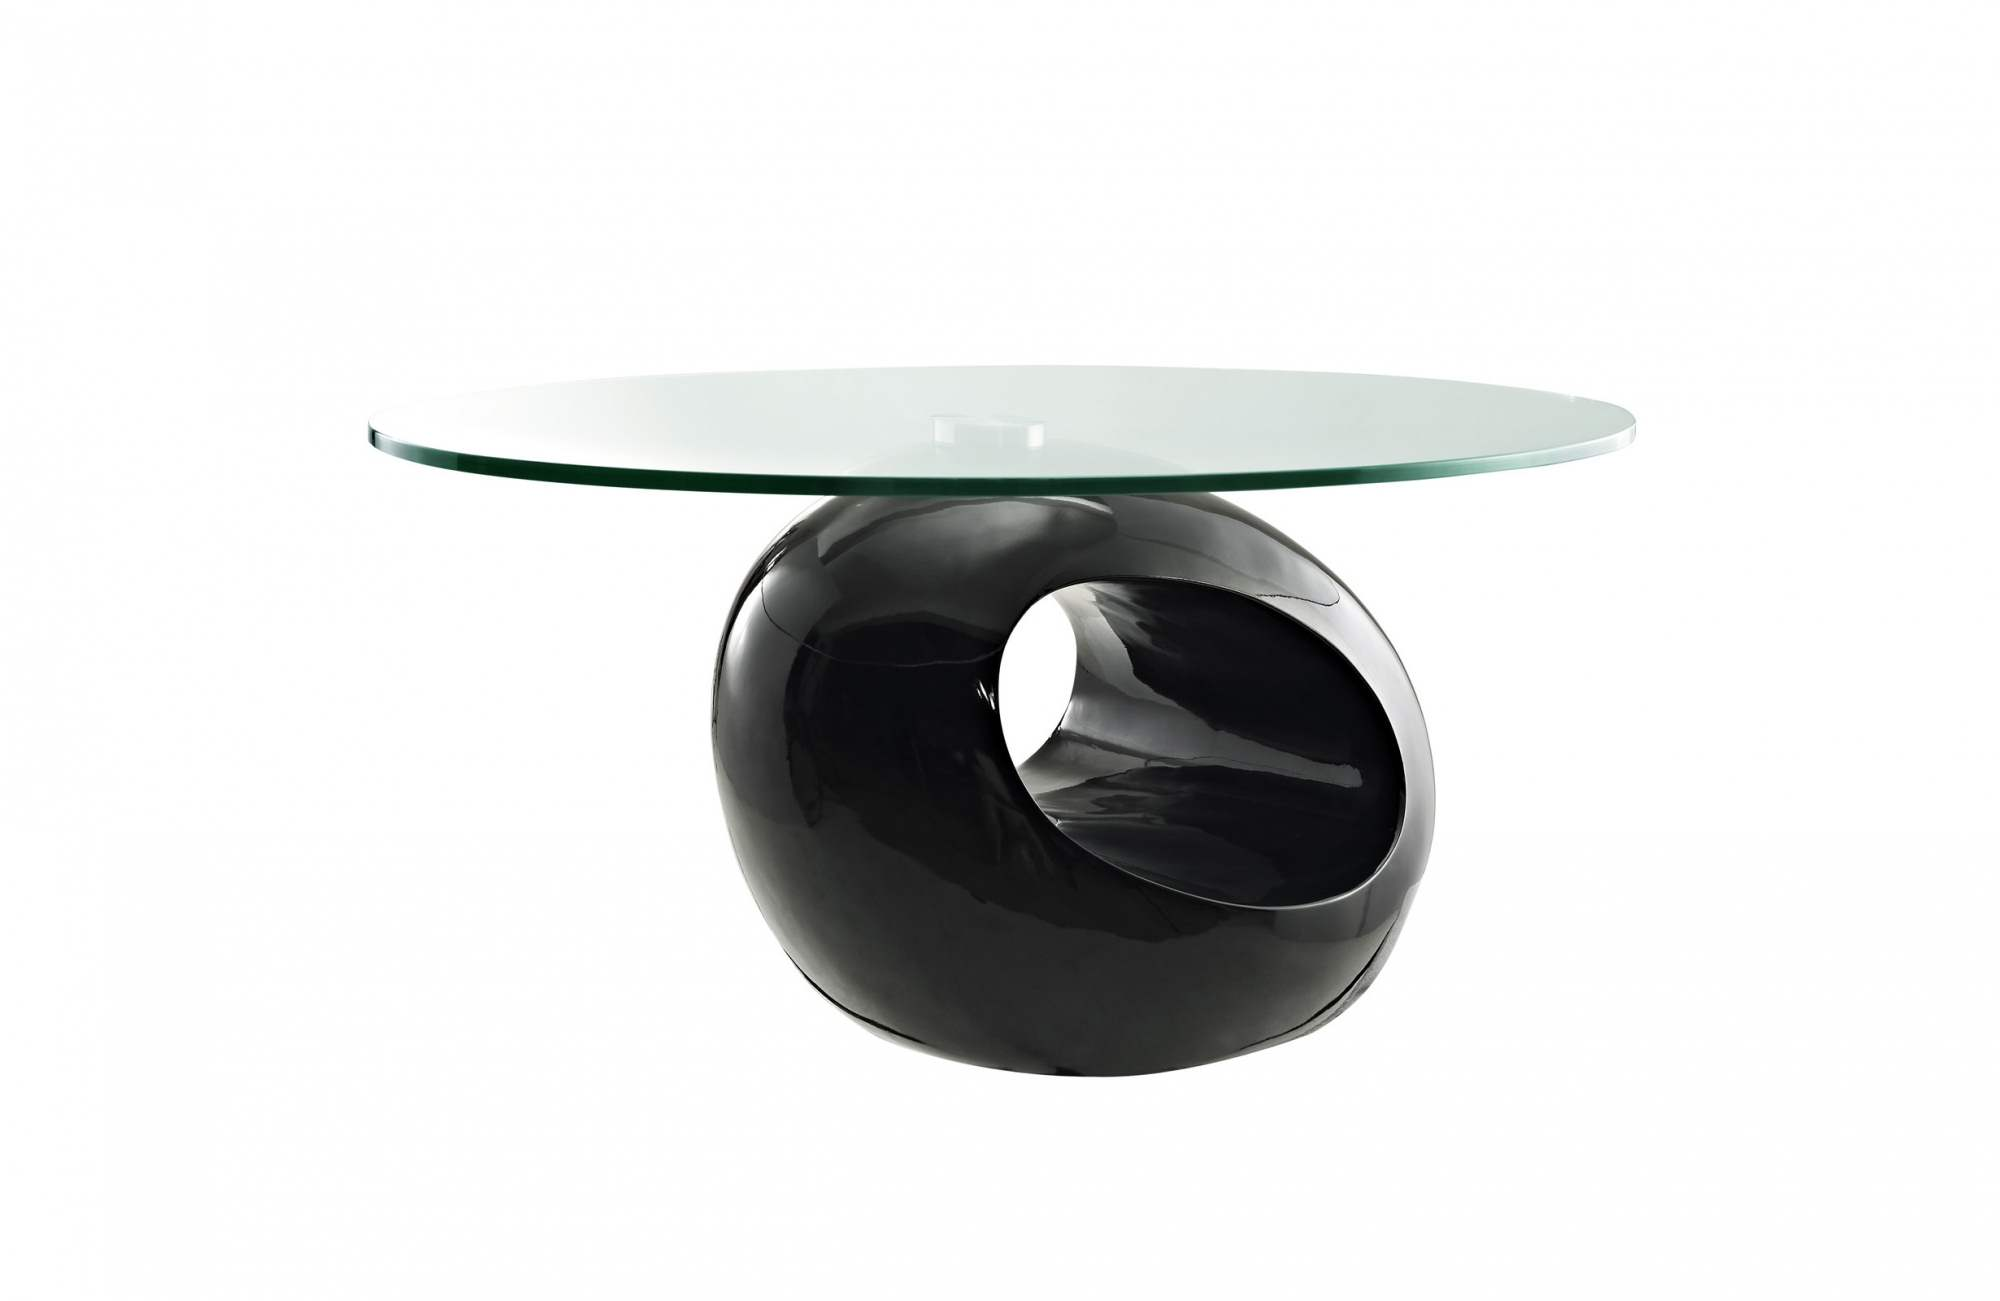 Deco in paris table basse design noir en verre maxus maxus noir - Table basse en verre noir ...